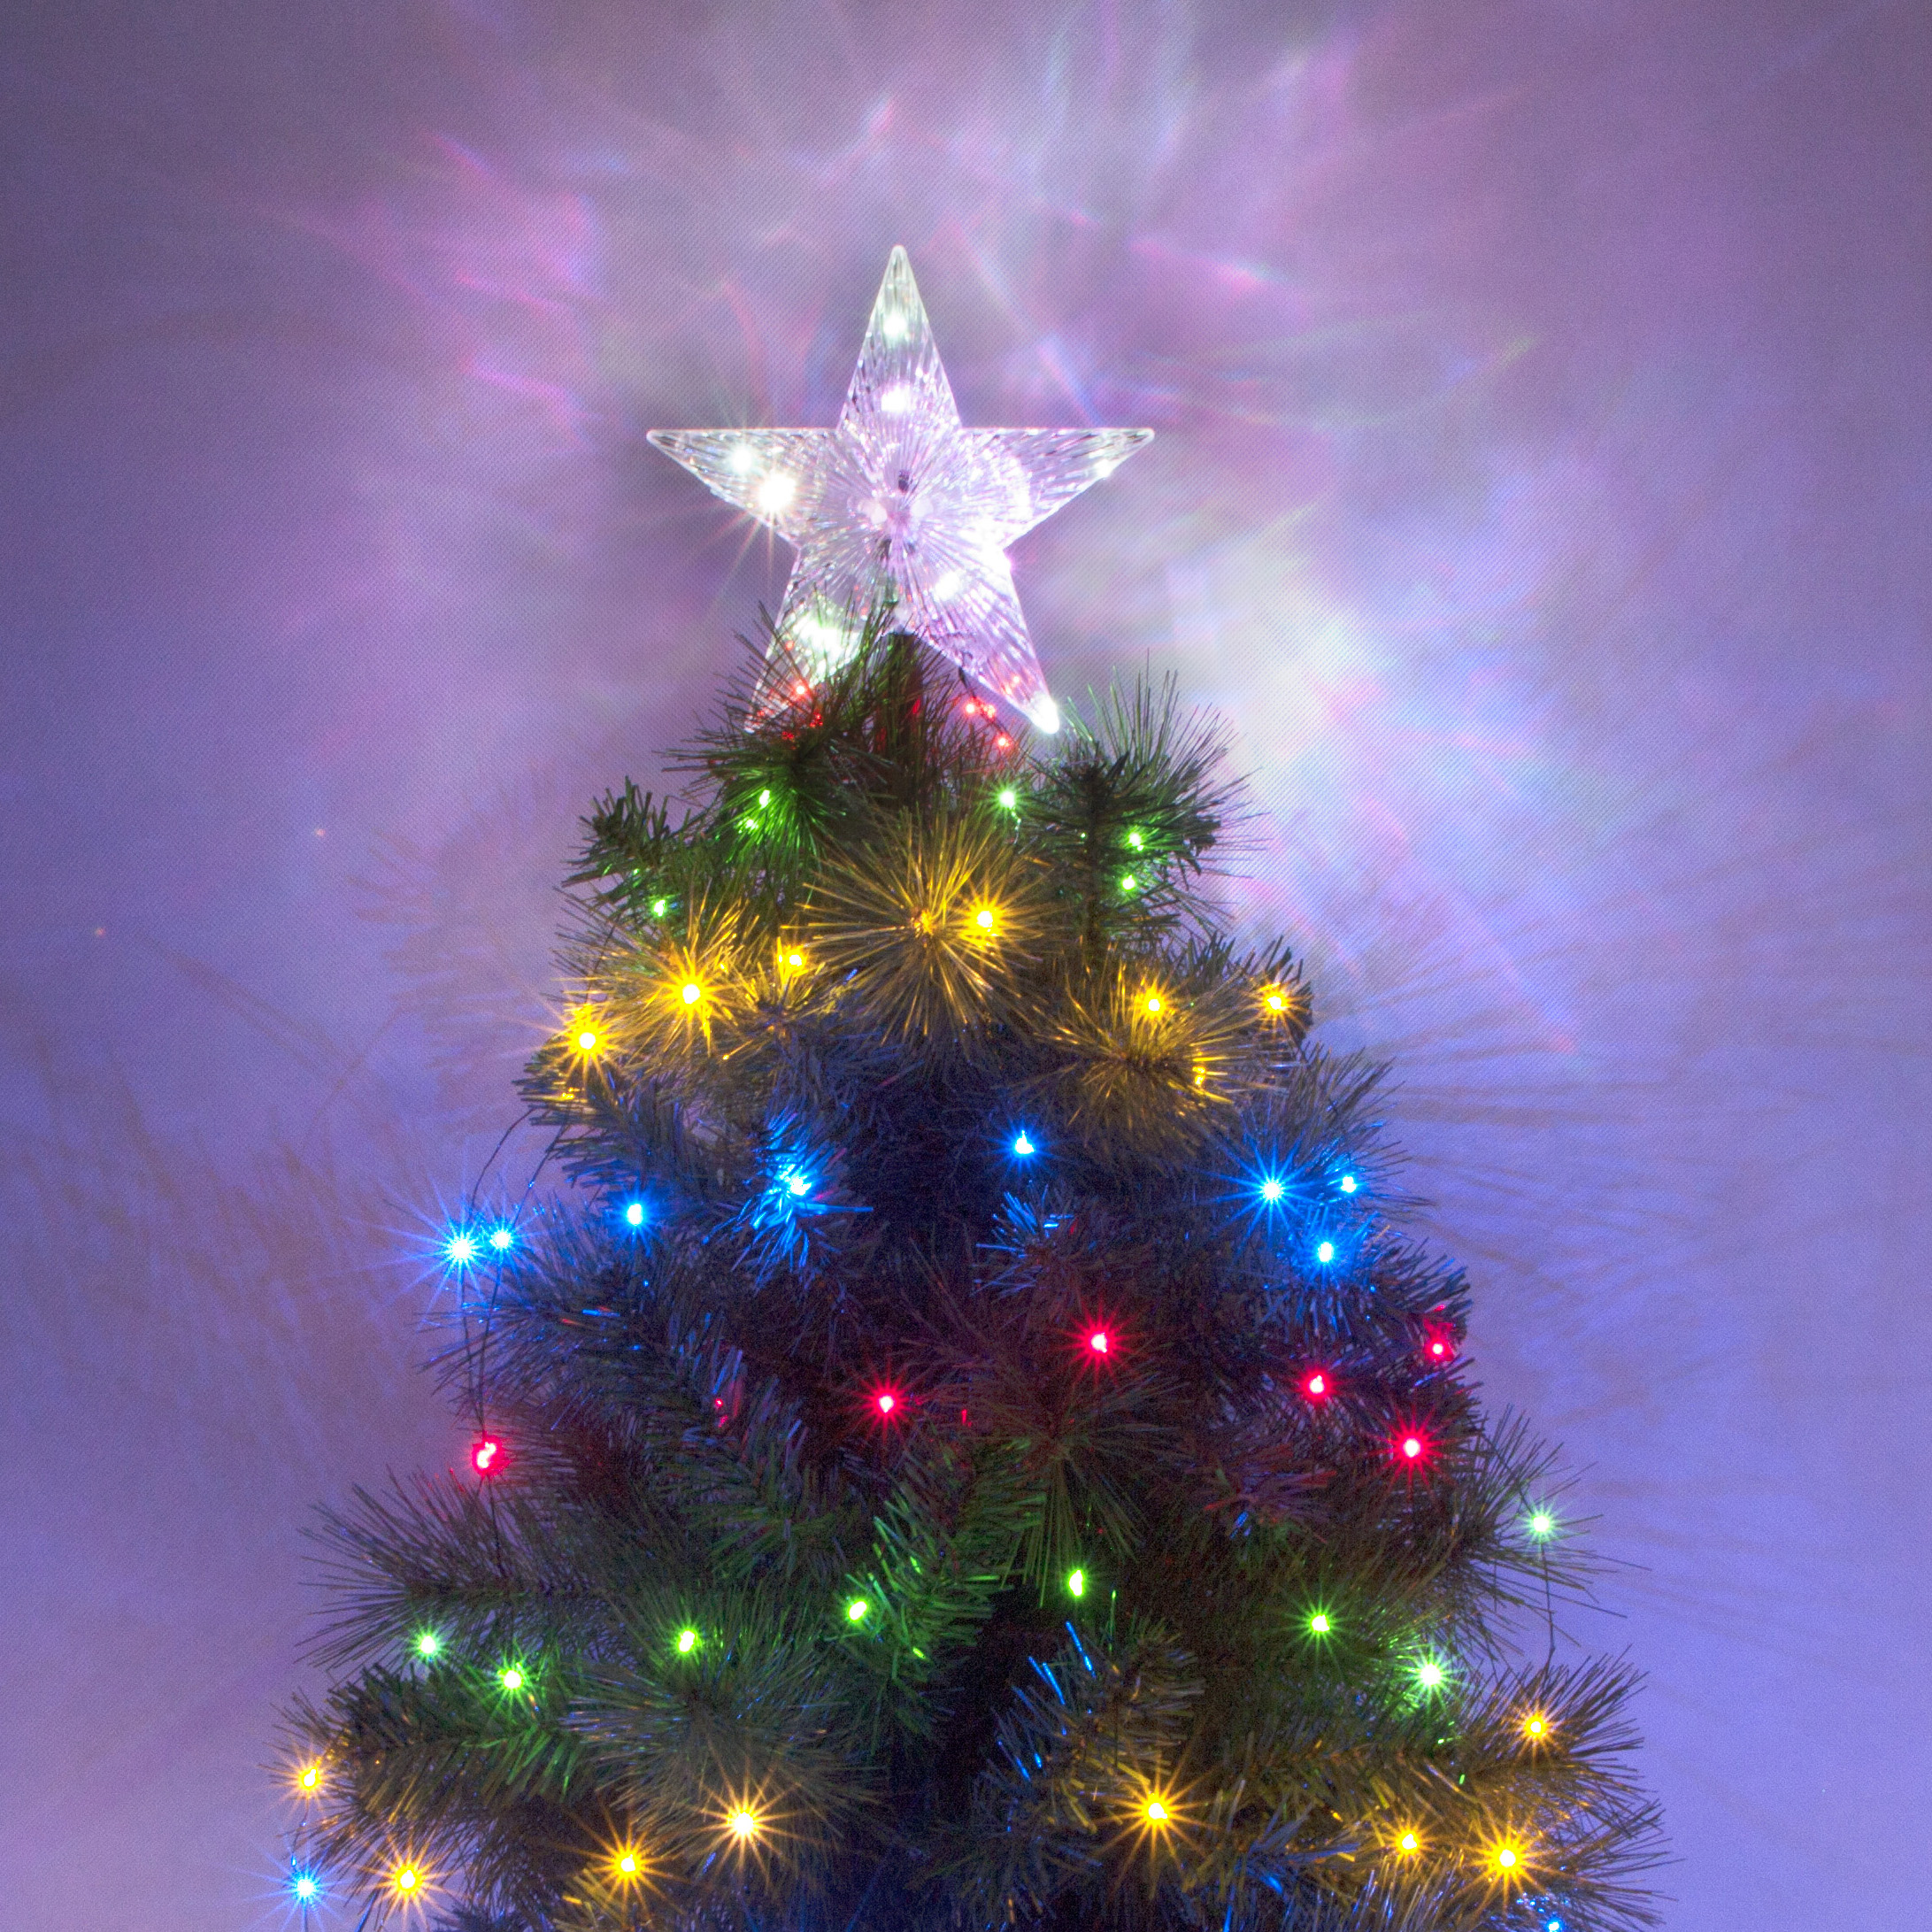 Finding Different Types of Christmas Lights for Decorating Your Christmas Tree